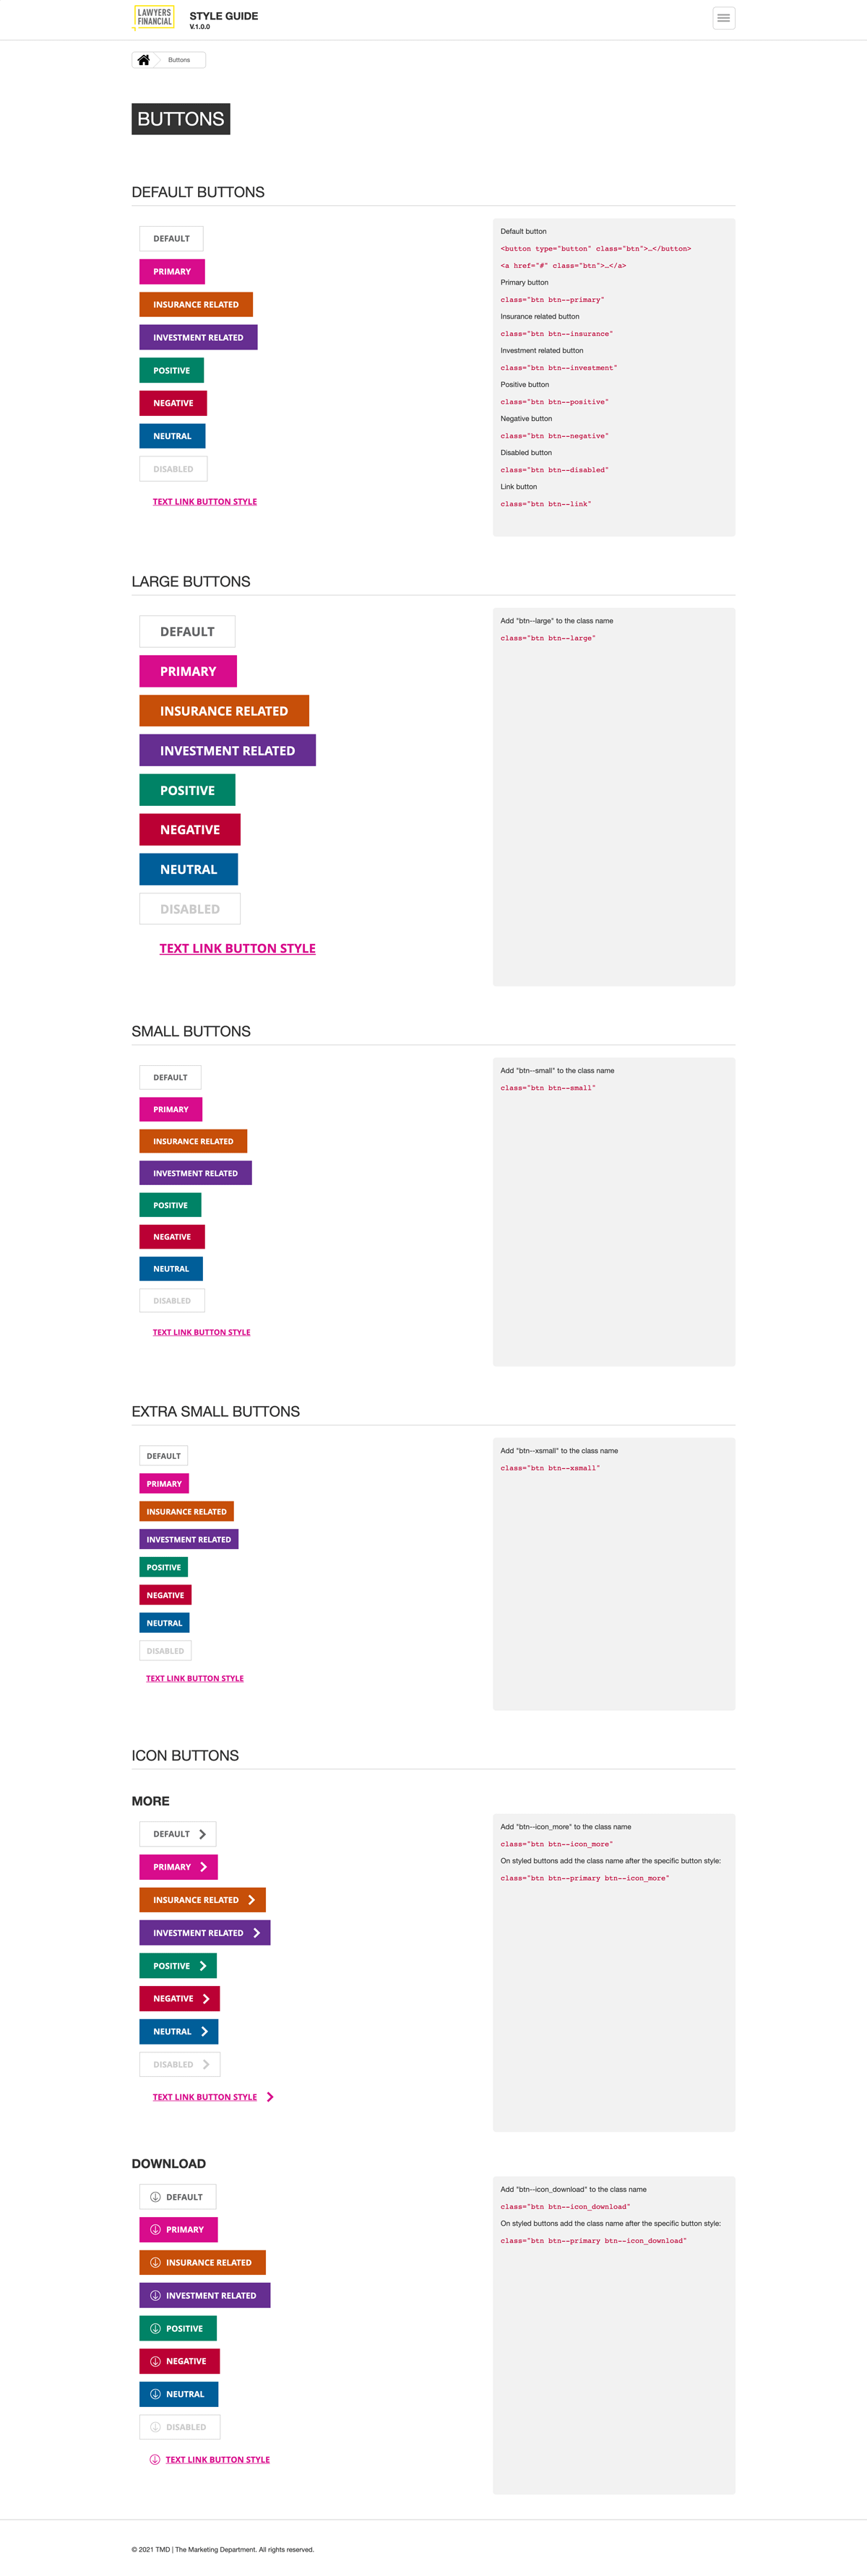 Style guide buttons page